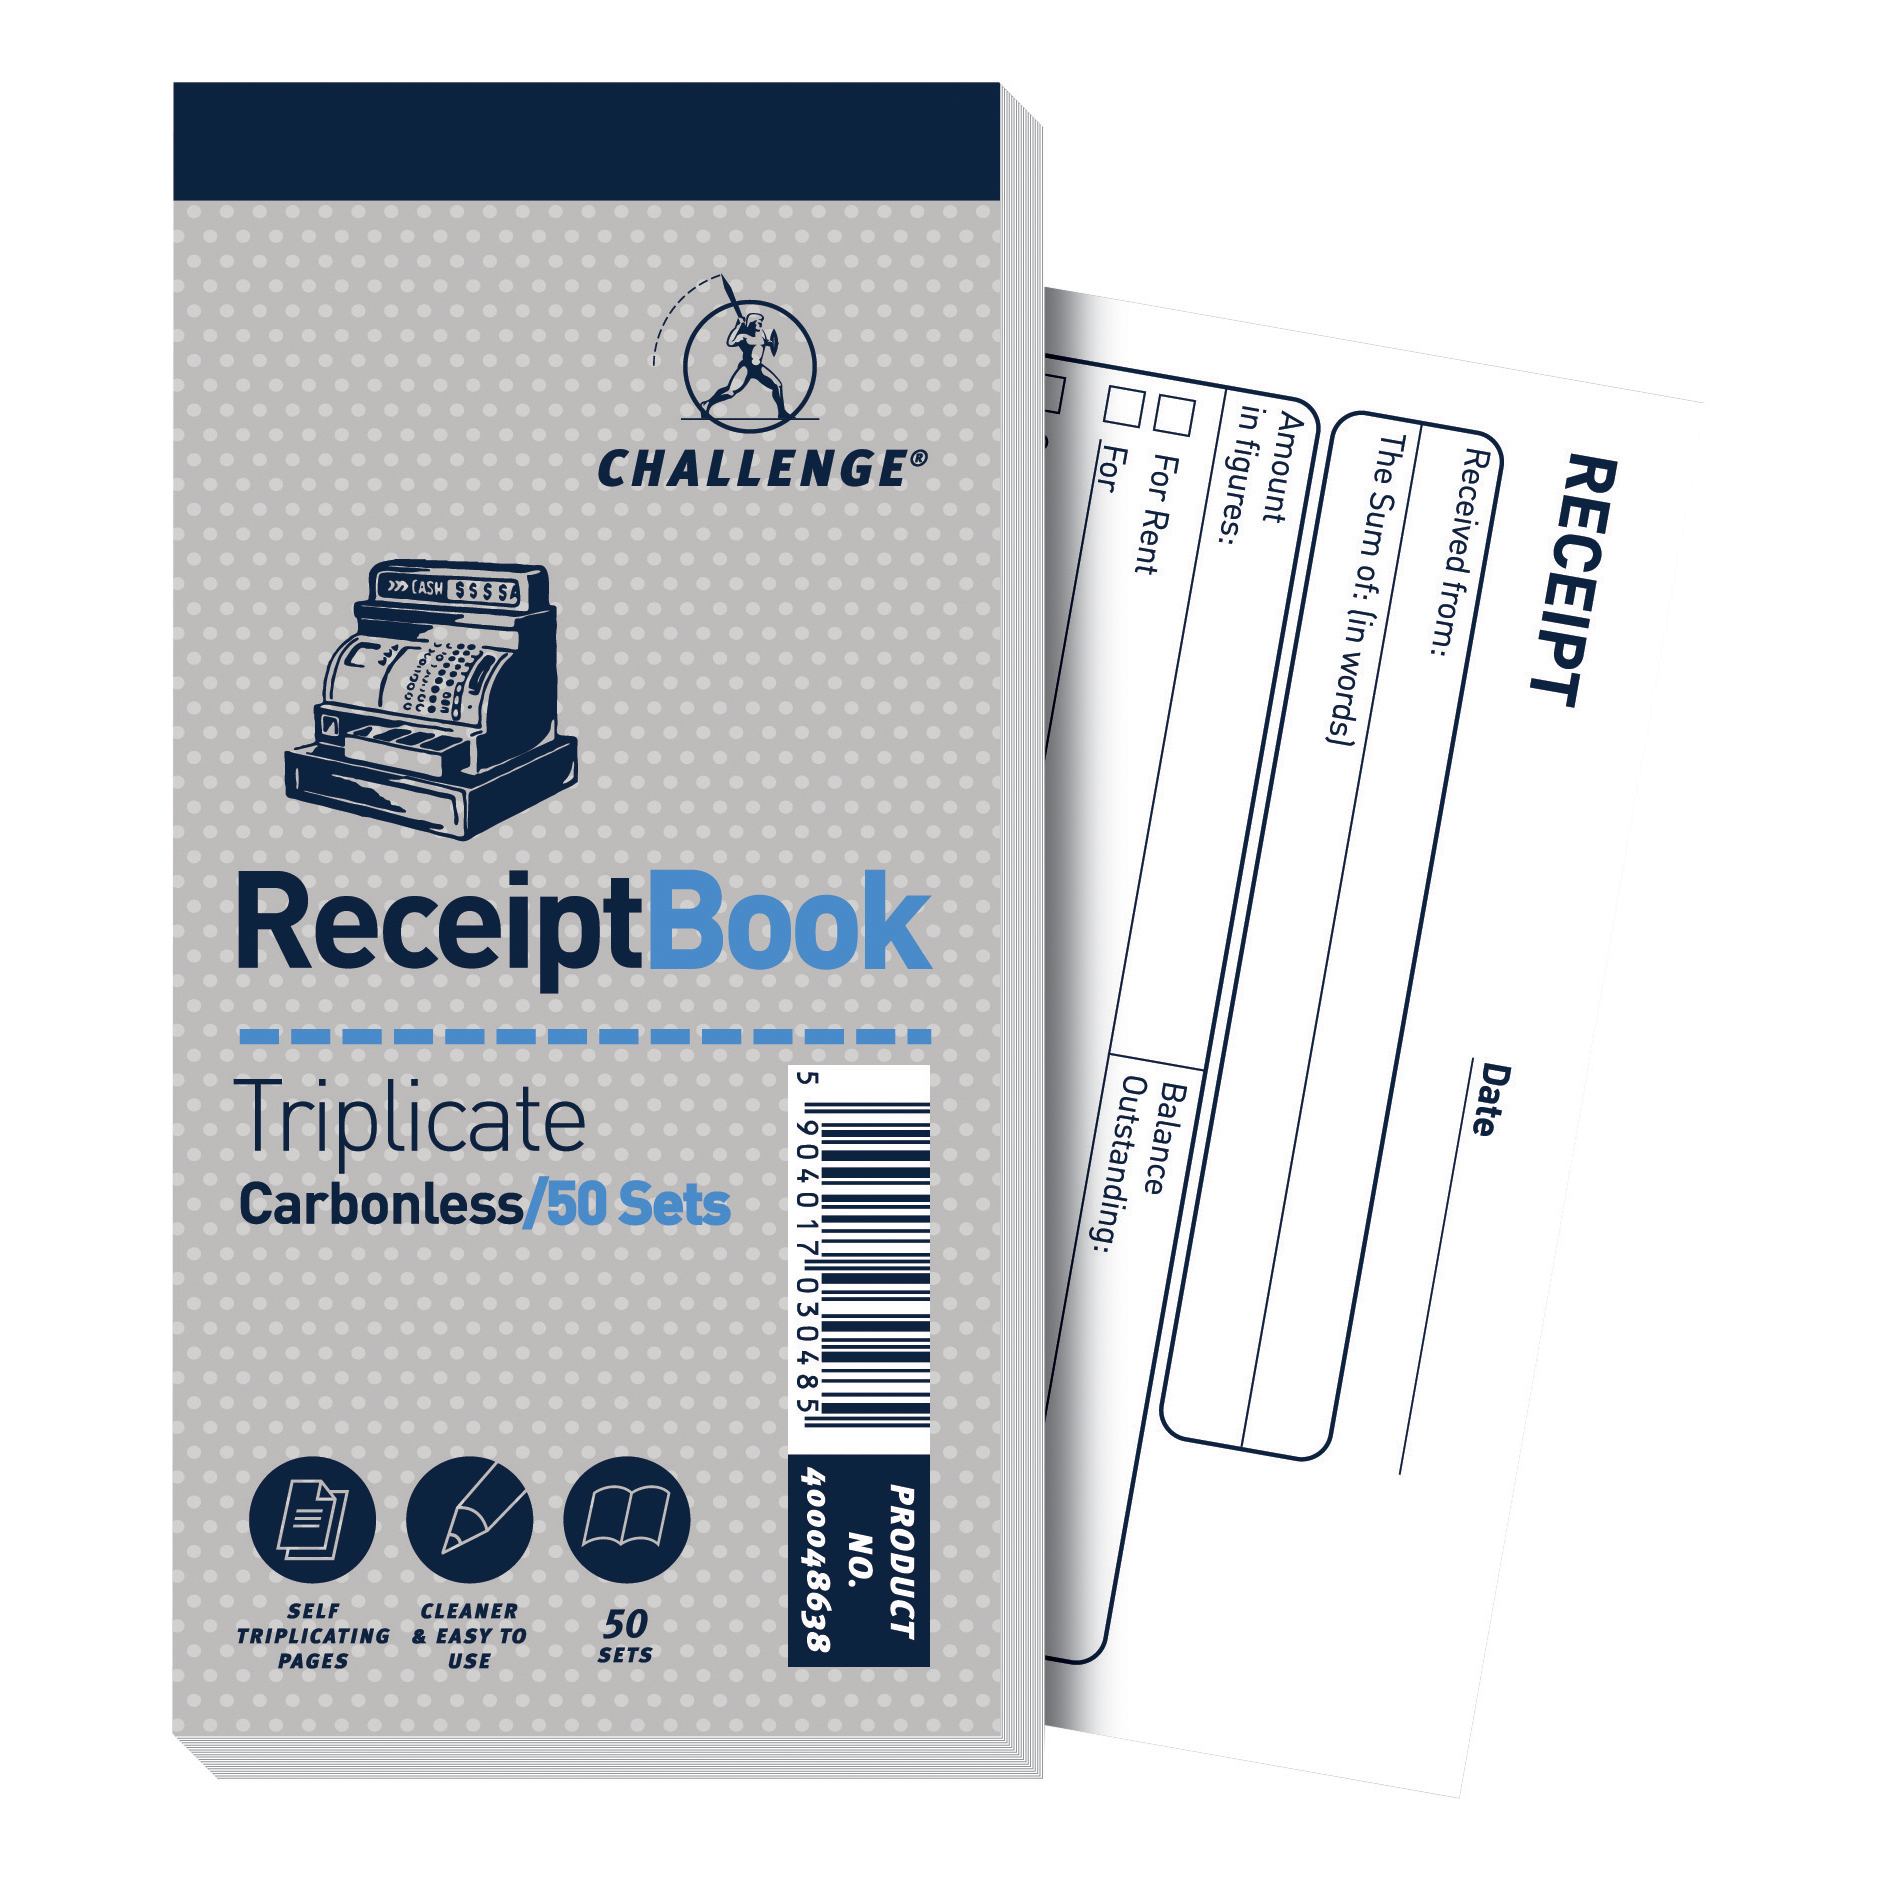 Challenge Triplicate Book Carbonless Receipt 50 Receipts 140x70mm Ref 400048638 Pack 10